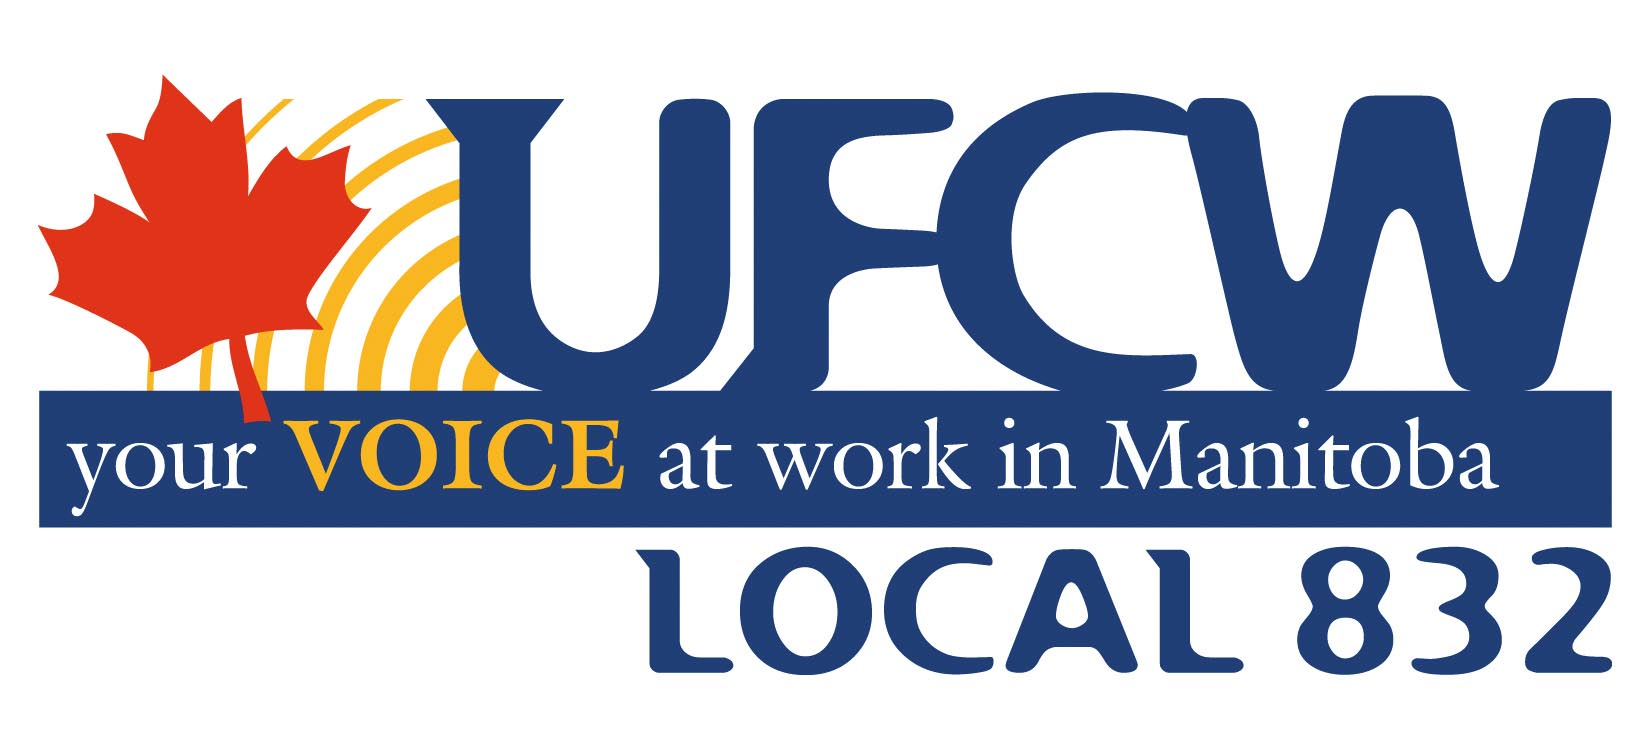 UFCW Local 832 calls on Loblaw and the Province of Manitoba to Cancel No Tax Sale on Non-Essential Goods